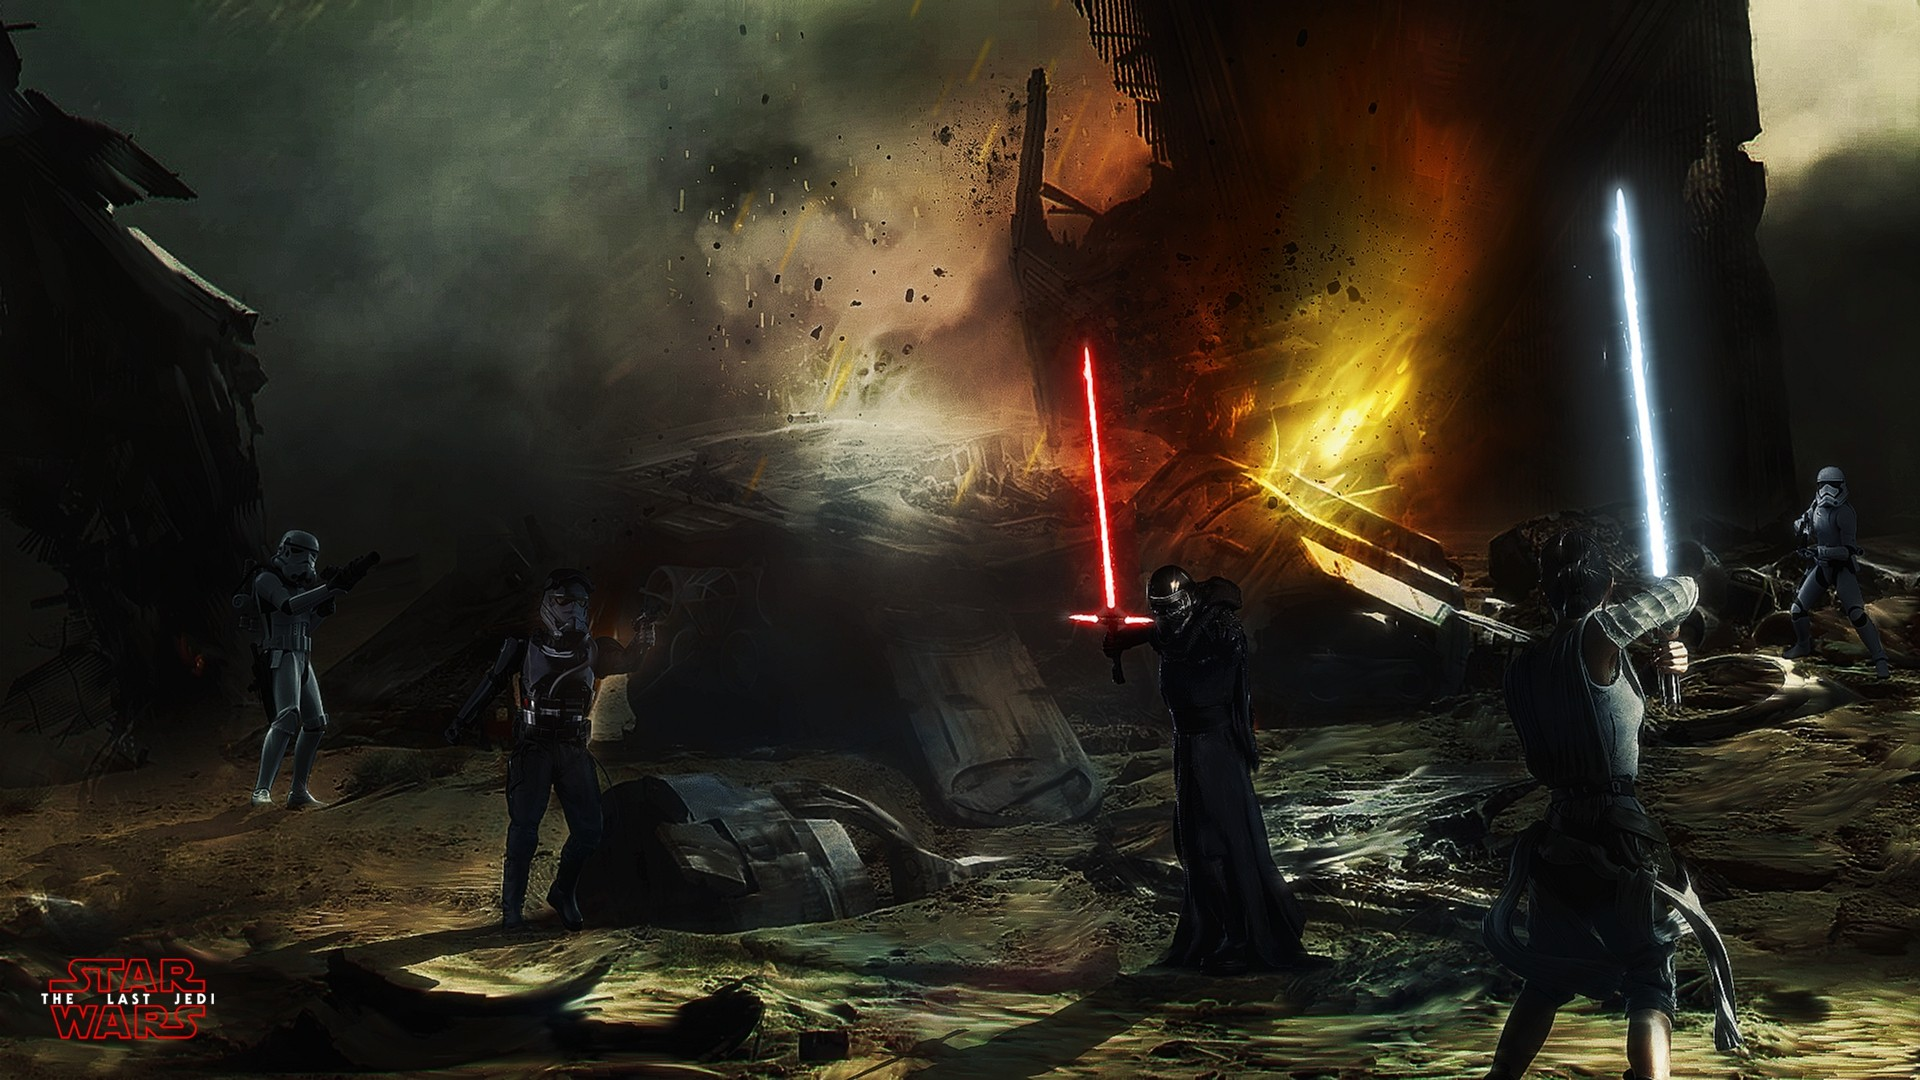 Rey Vs Kylo Ren Hd Wallpaper Background Image 1920x1080 Id 886203 Wallpaper Abyss